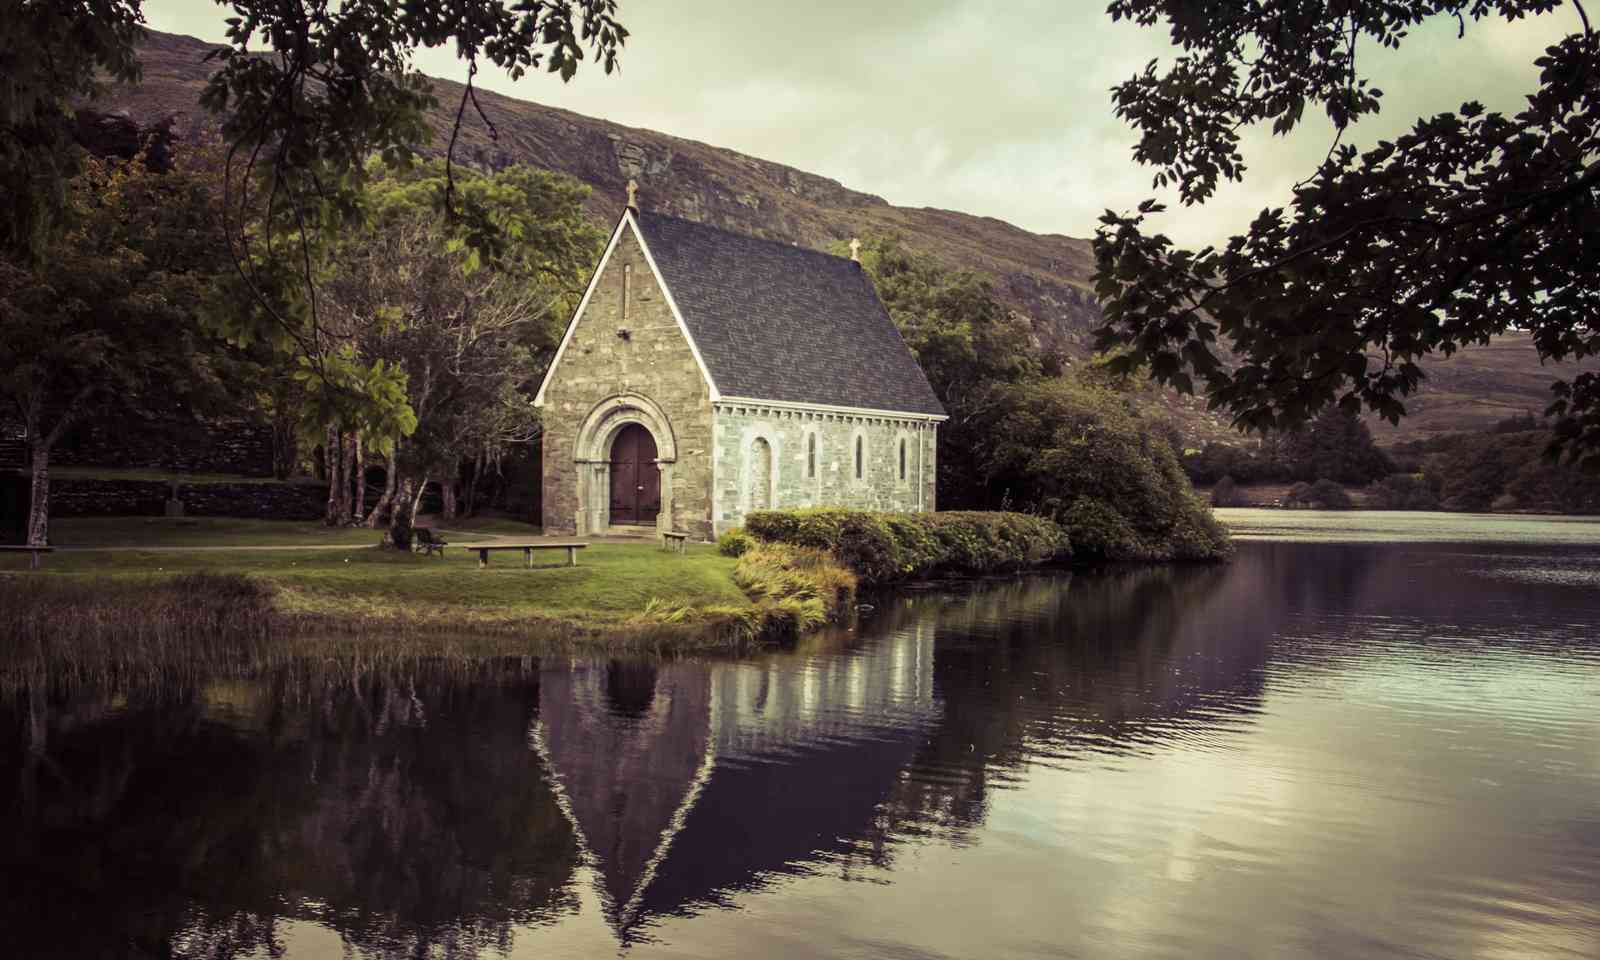 Gougane Barra Church, Ireland (Dreamstime)